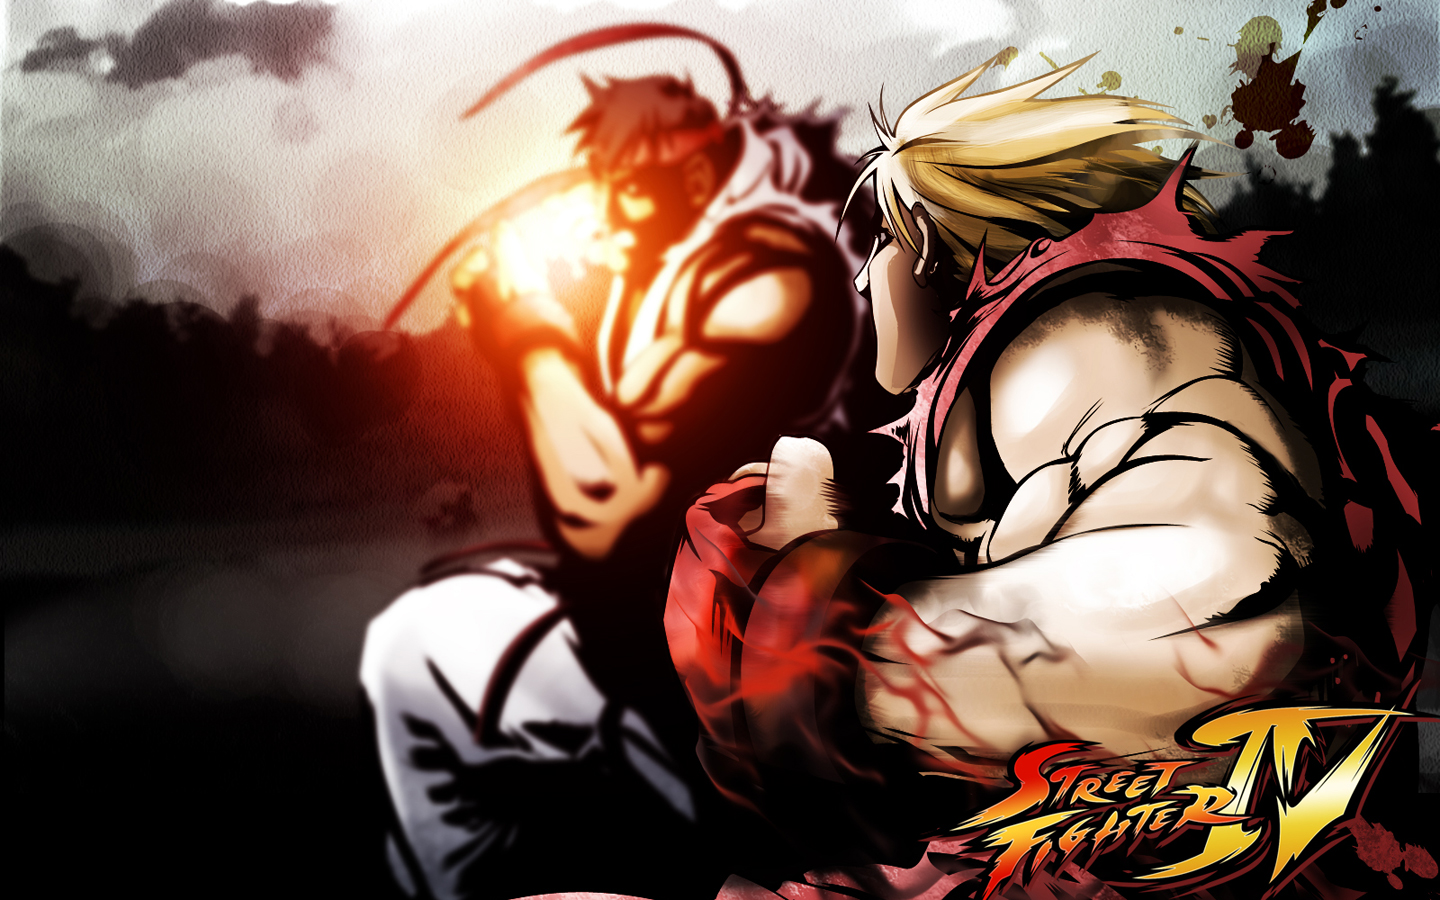 street fighter images ryu and ken hd wallpaper and background photos